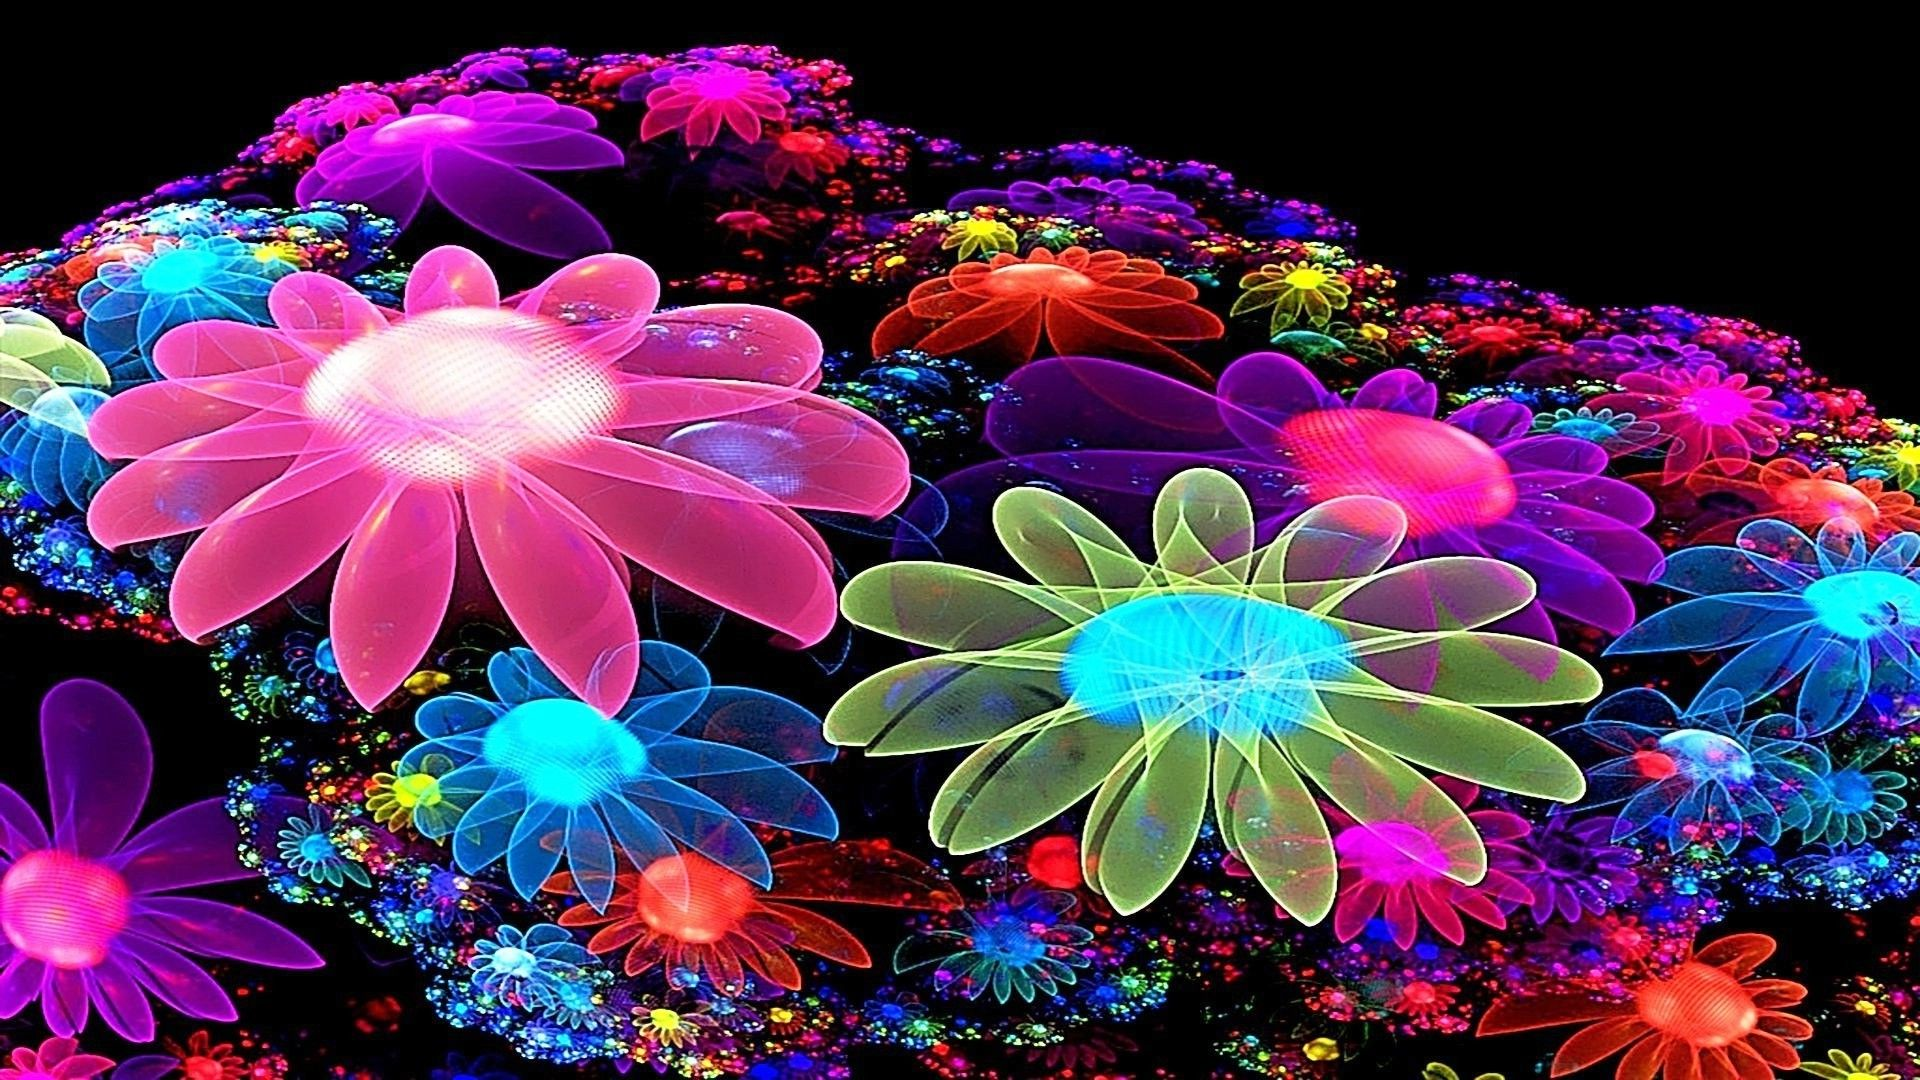 Colorful Flower Wallpaper 3D   Best HD Wallpapers   Wallpaperscute     Colorful Flower Wallpaper 3D   Best HD Wallpapers